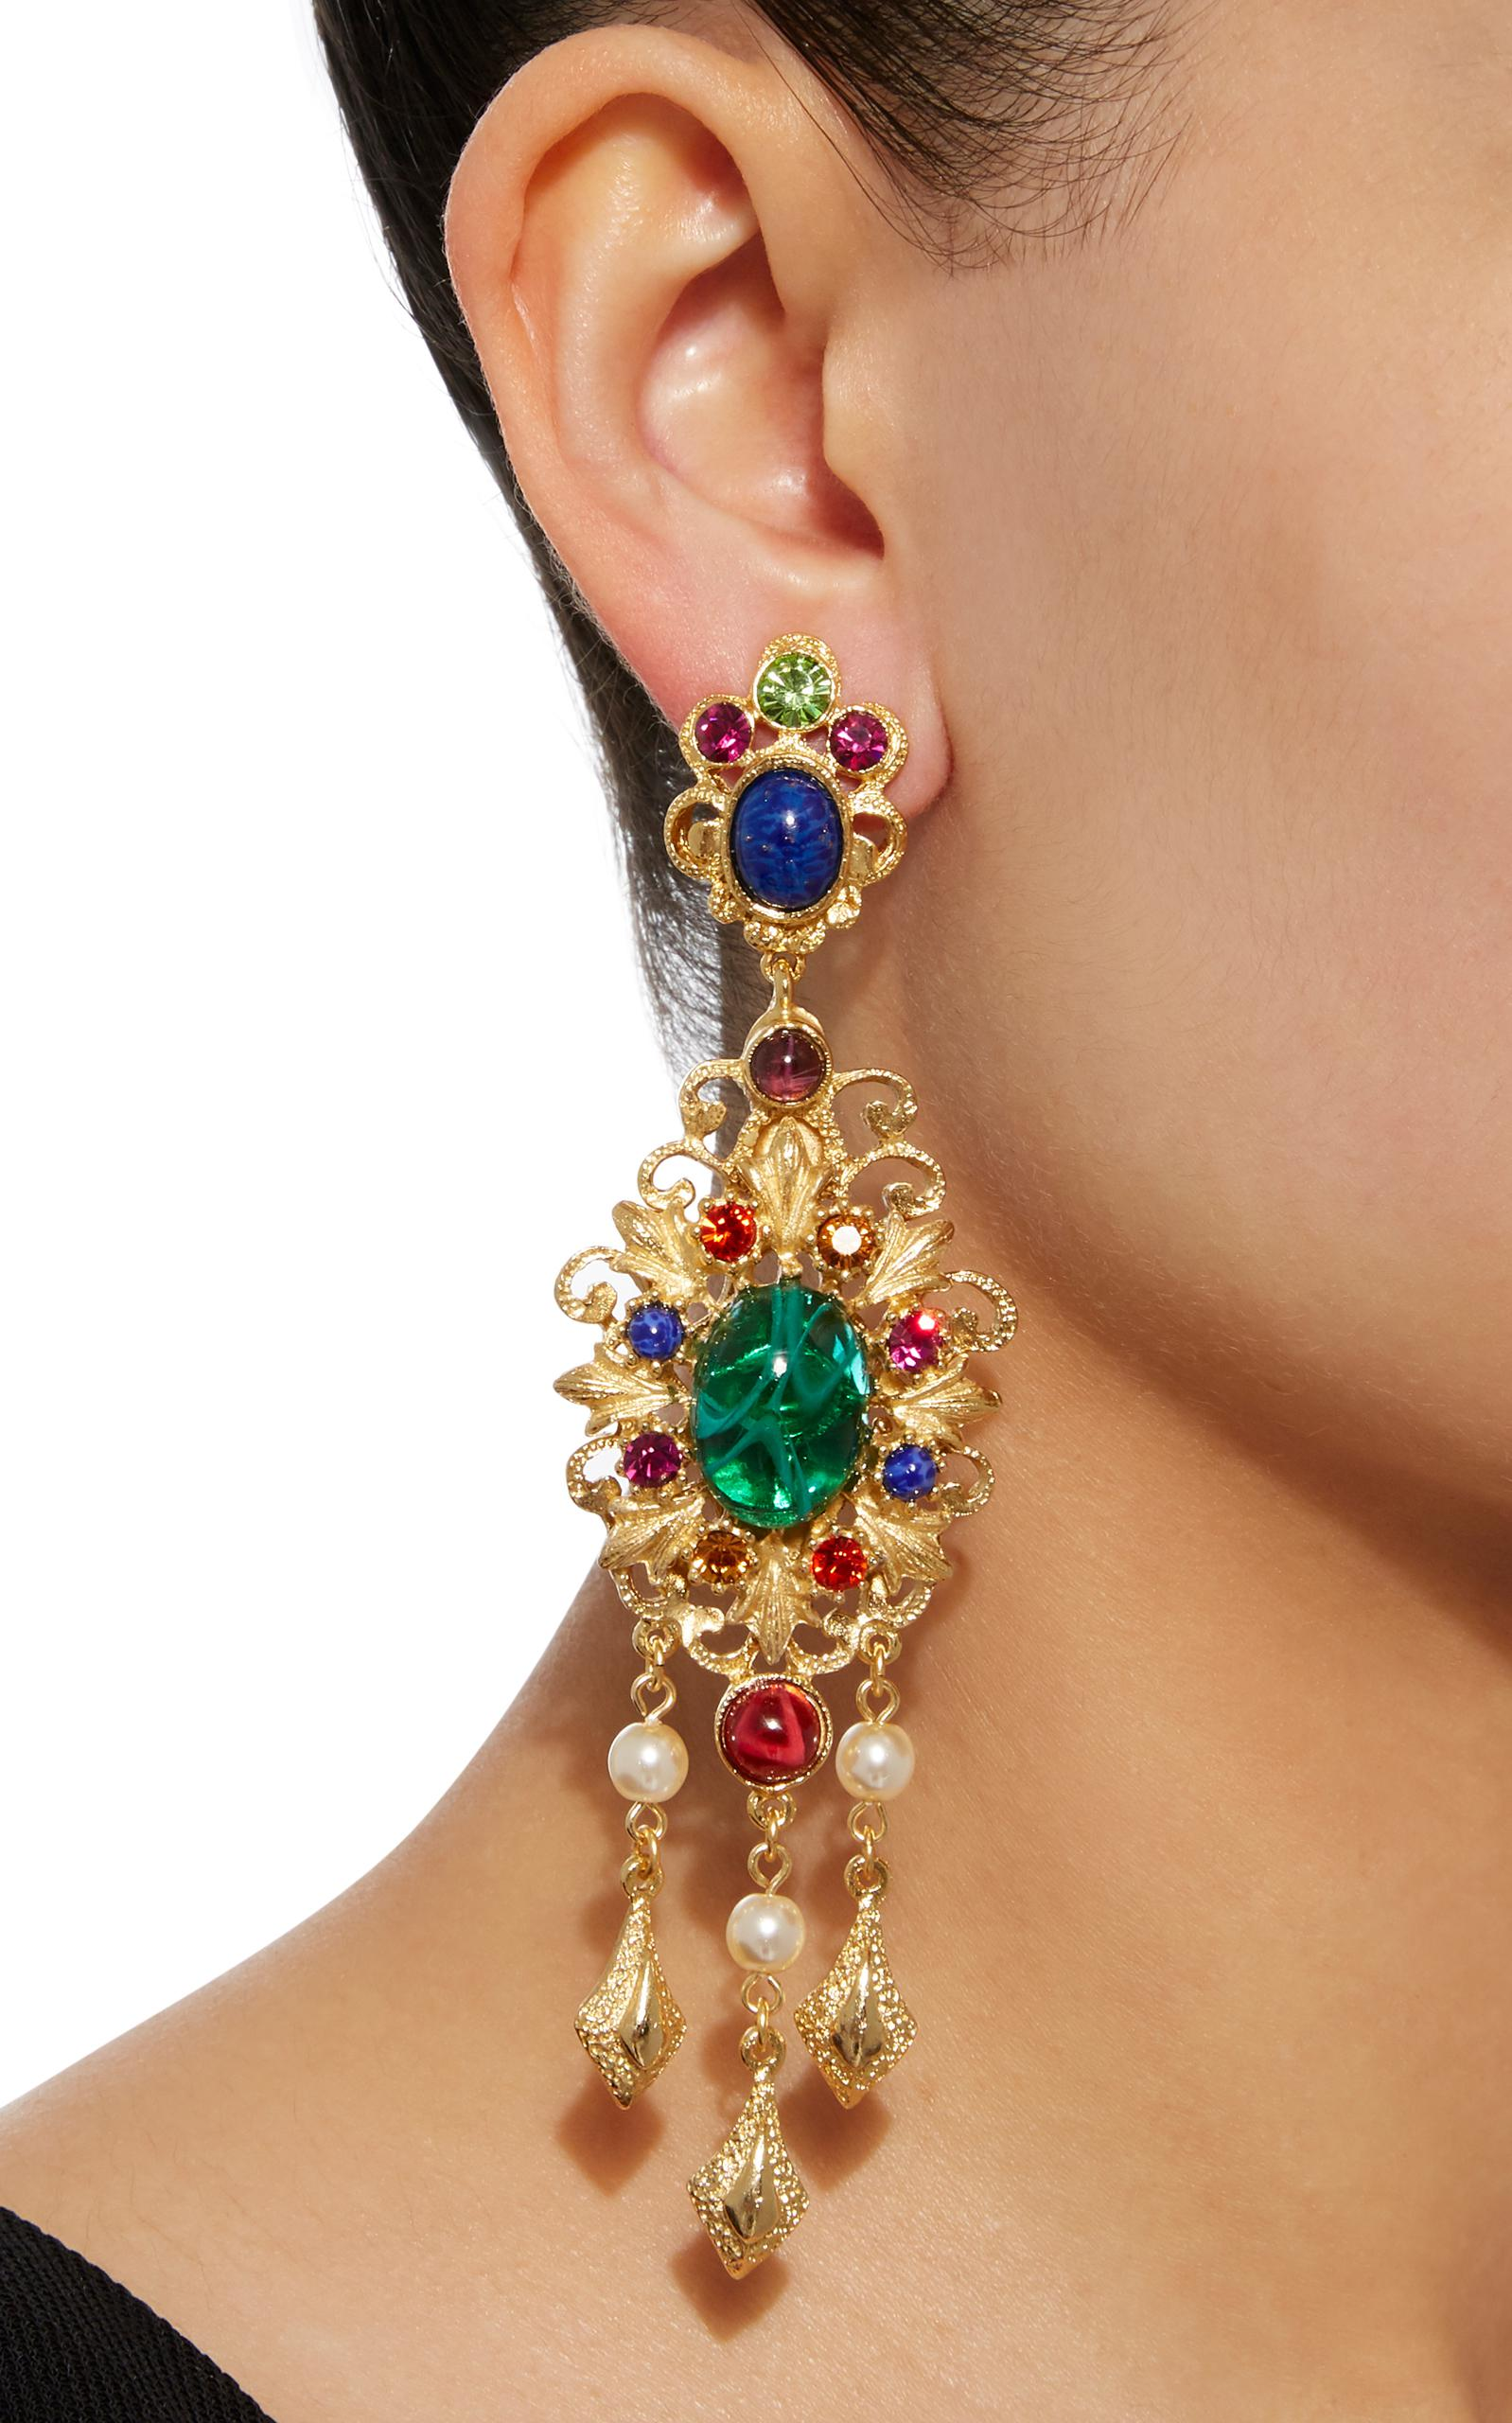 Gold-Plated Brass Crystal Chandelier Earrings Ben-Amun GbrORwlMSA